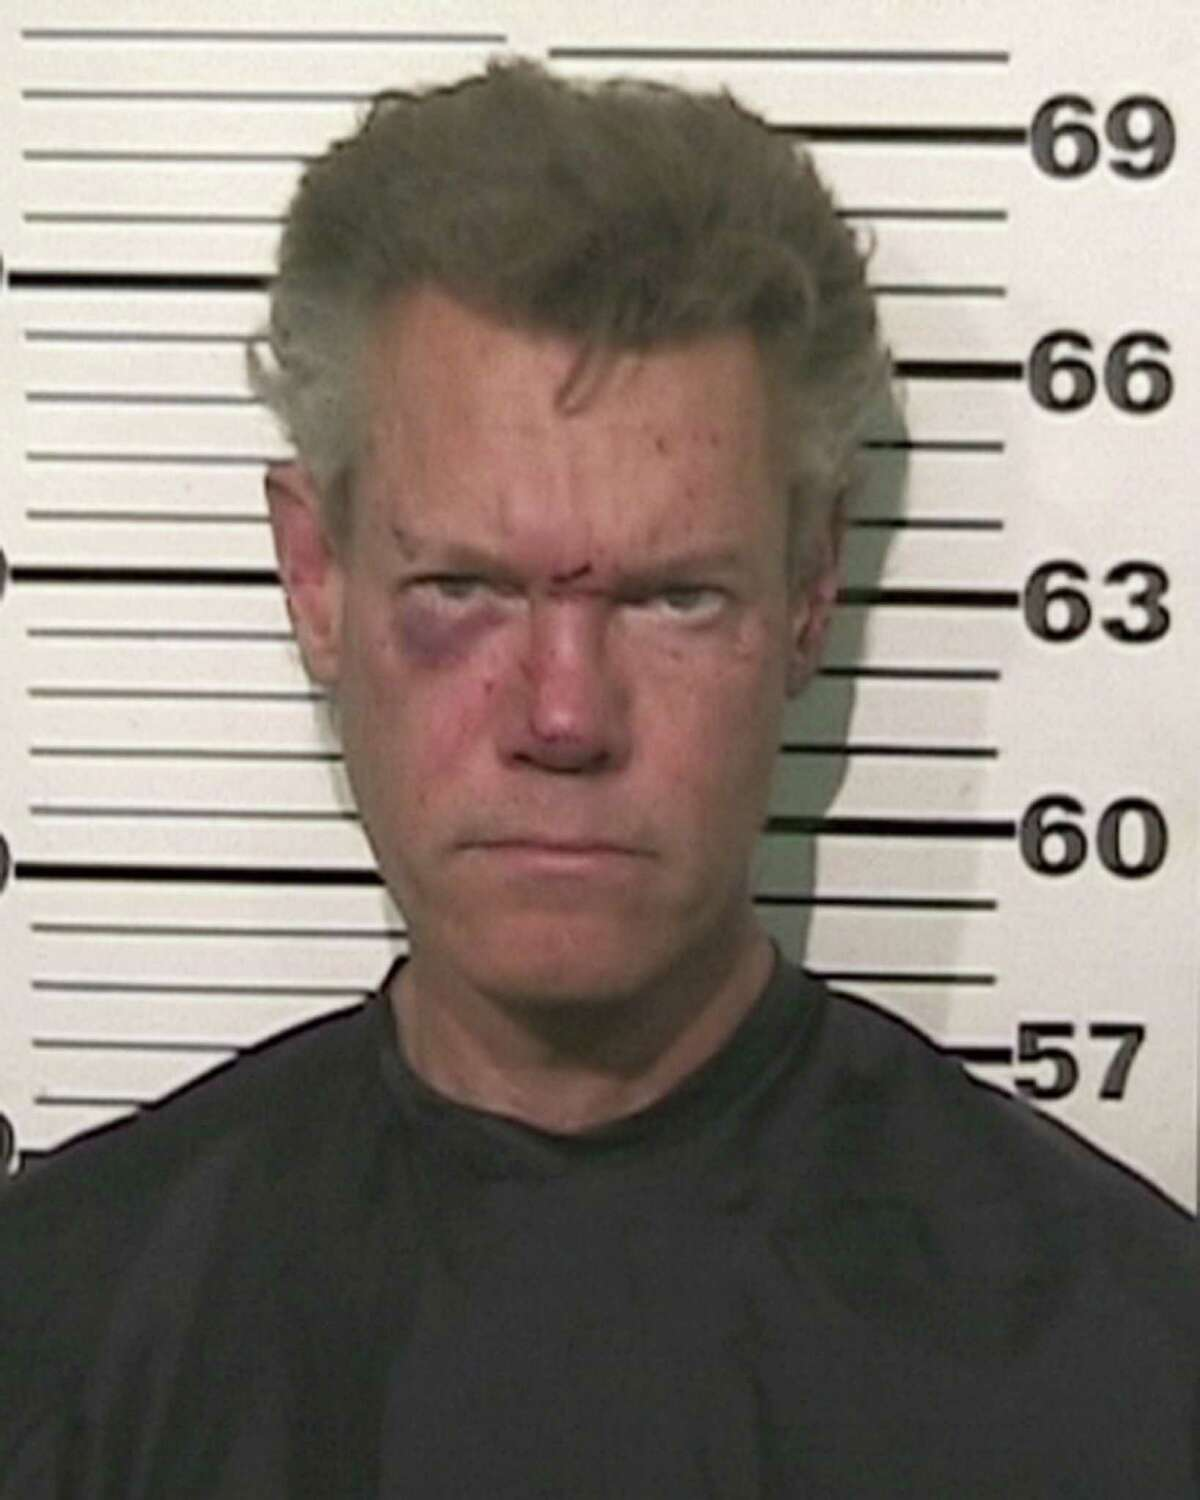 Randy Travis Aside from this mug shot, nothing was funny about Randy Travis' August 2012 arrest on DWI charges after he was found naked on a road near his home in the North Texas town of Tioga. Two weeks later, he was accused of assault after brawling with his girlfriend's estranged husband in the parking lot of a Plano church. Witnesses to the fight told TMZ that the county legend appeared